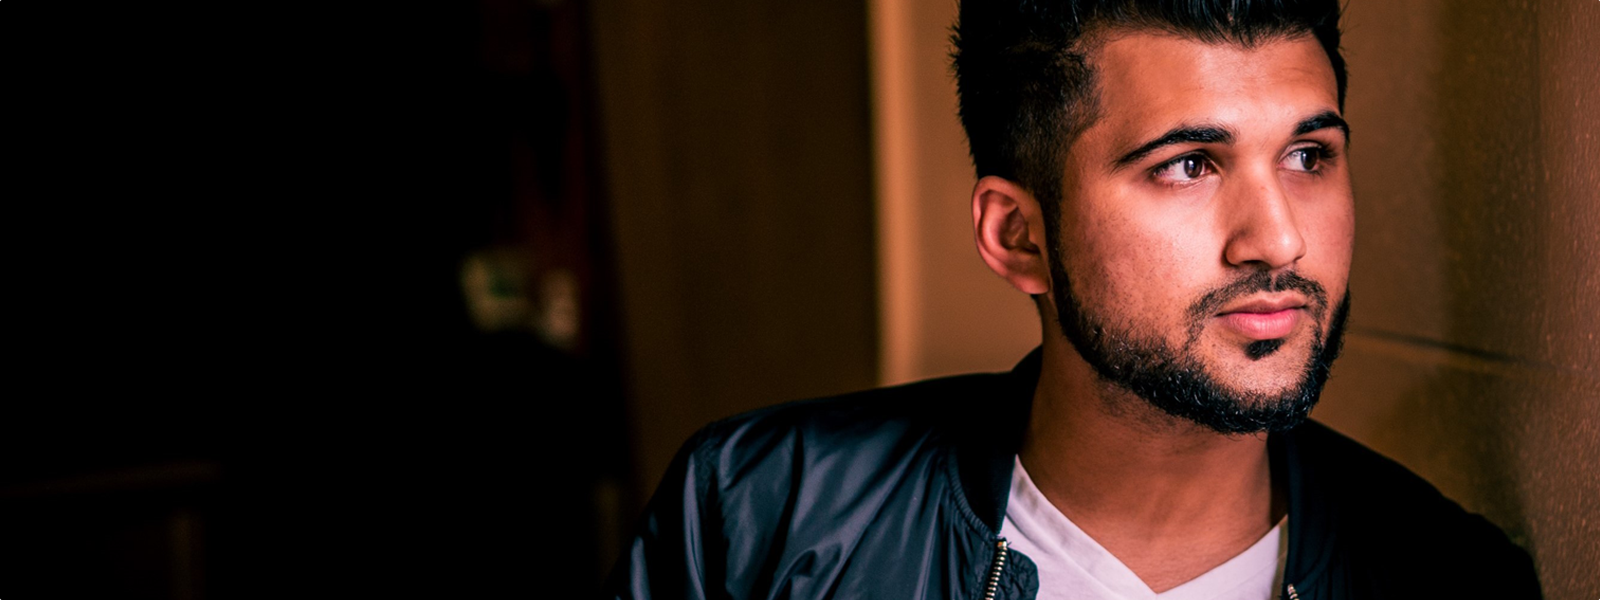 Profile view of Usama Syed in a leather jacket leaning against a wall